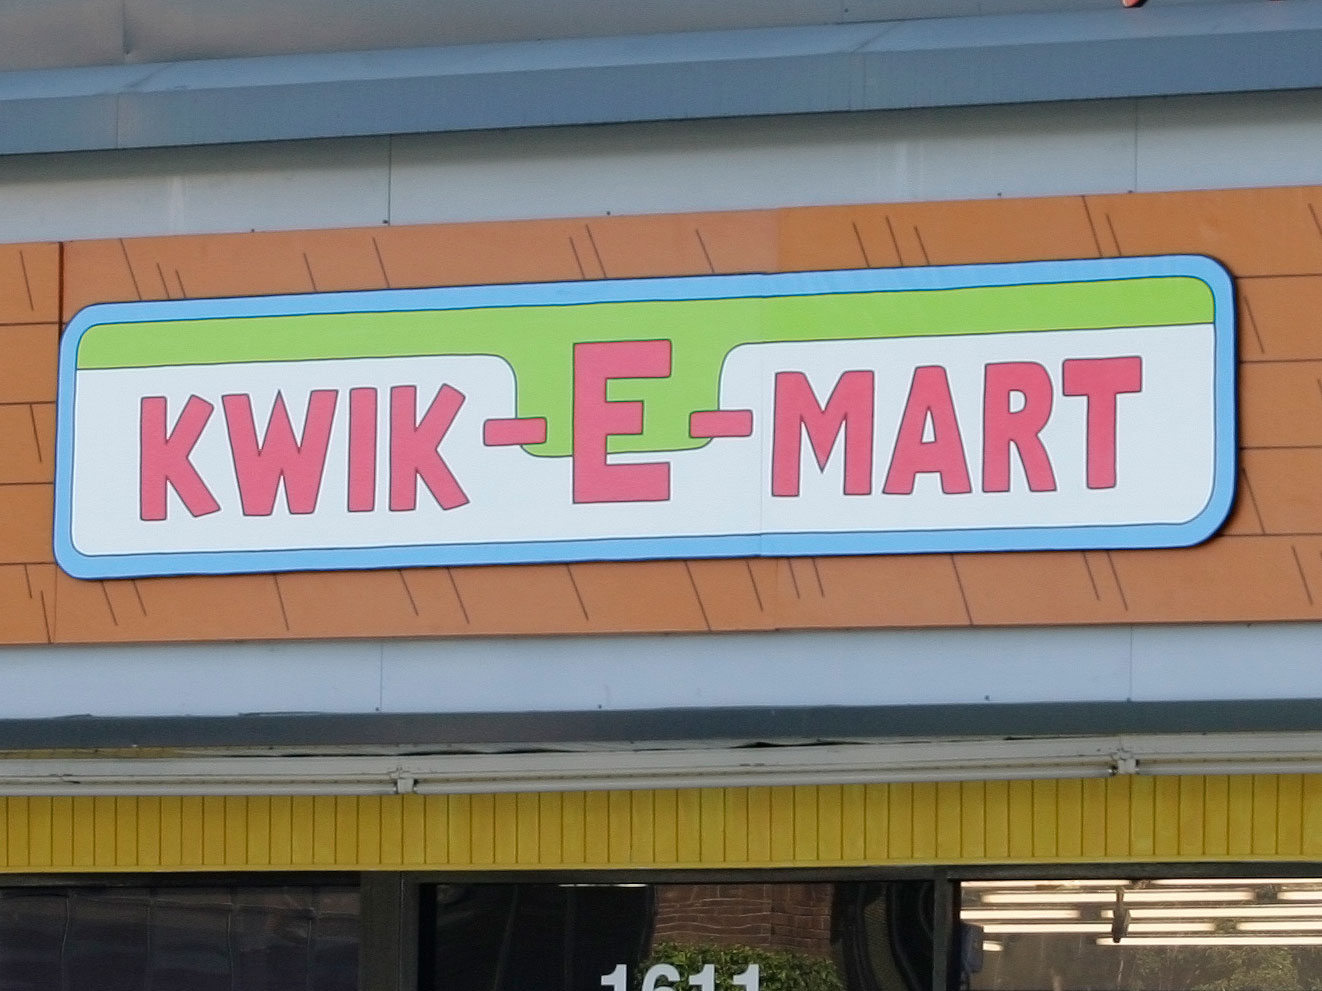 A Real Kwik-E-Mart Exists in South Carolina